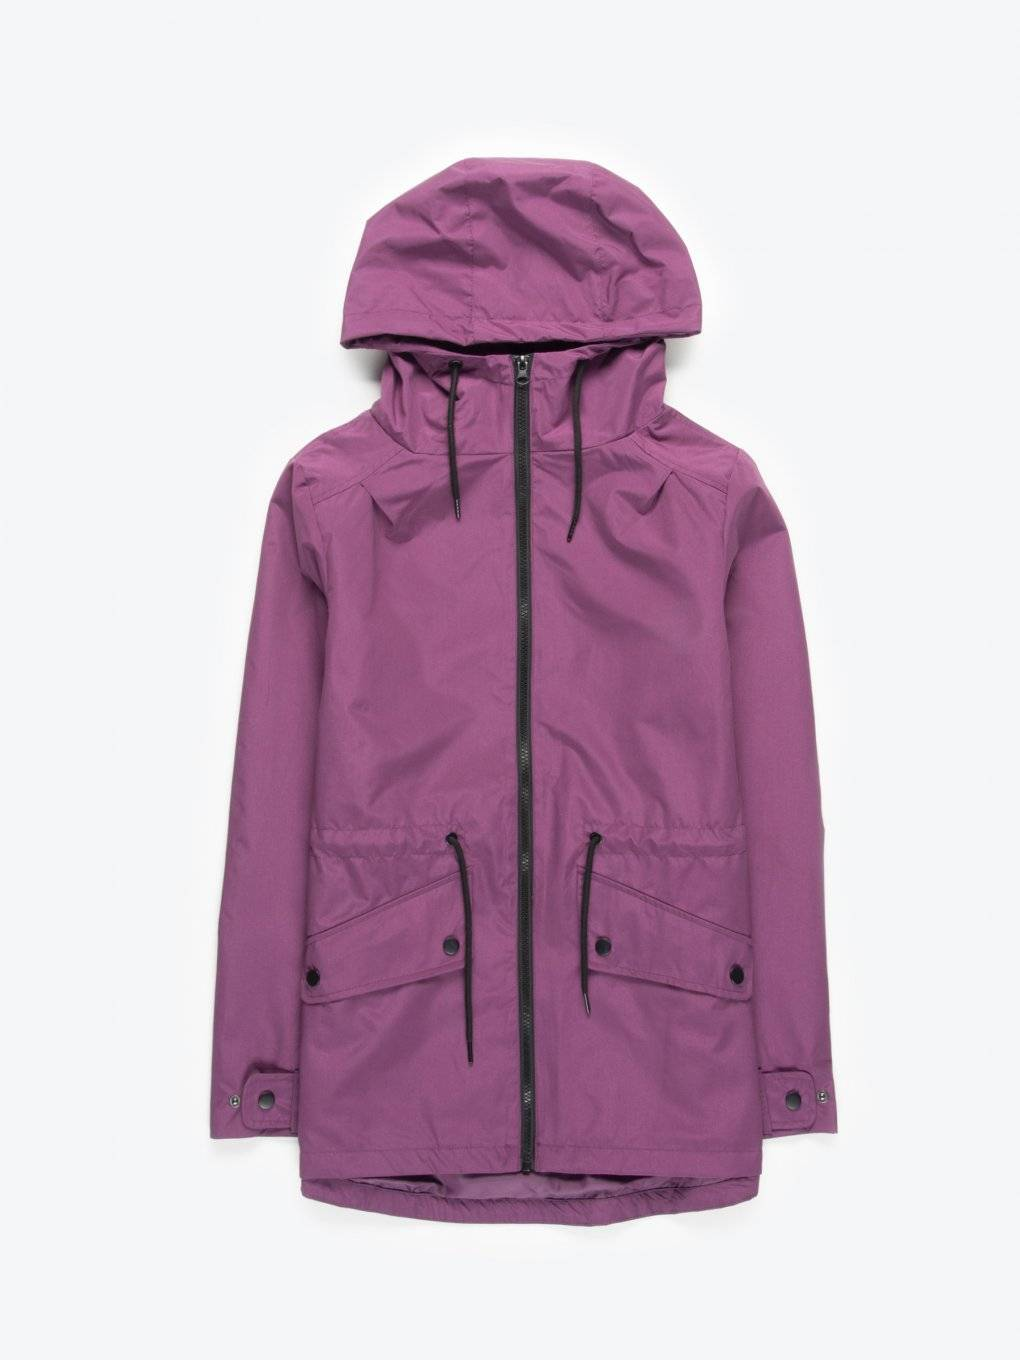 Light waterproof jacket with hood